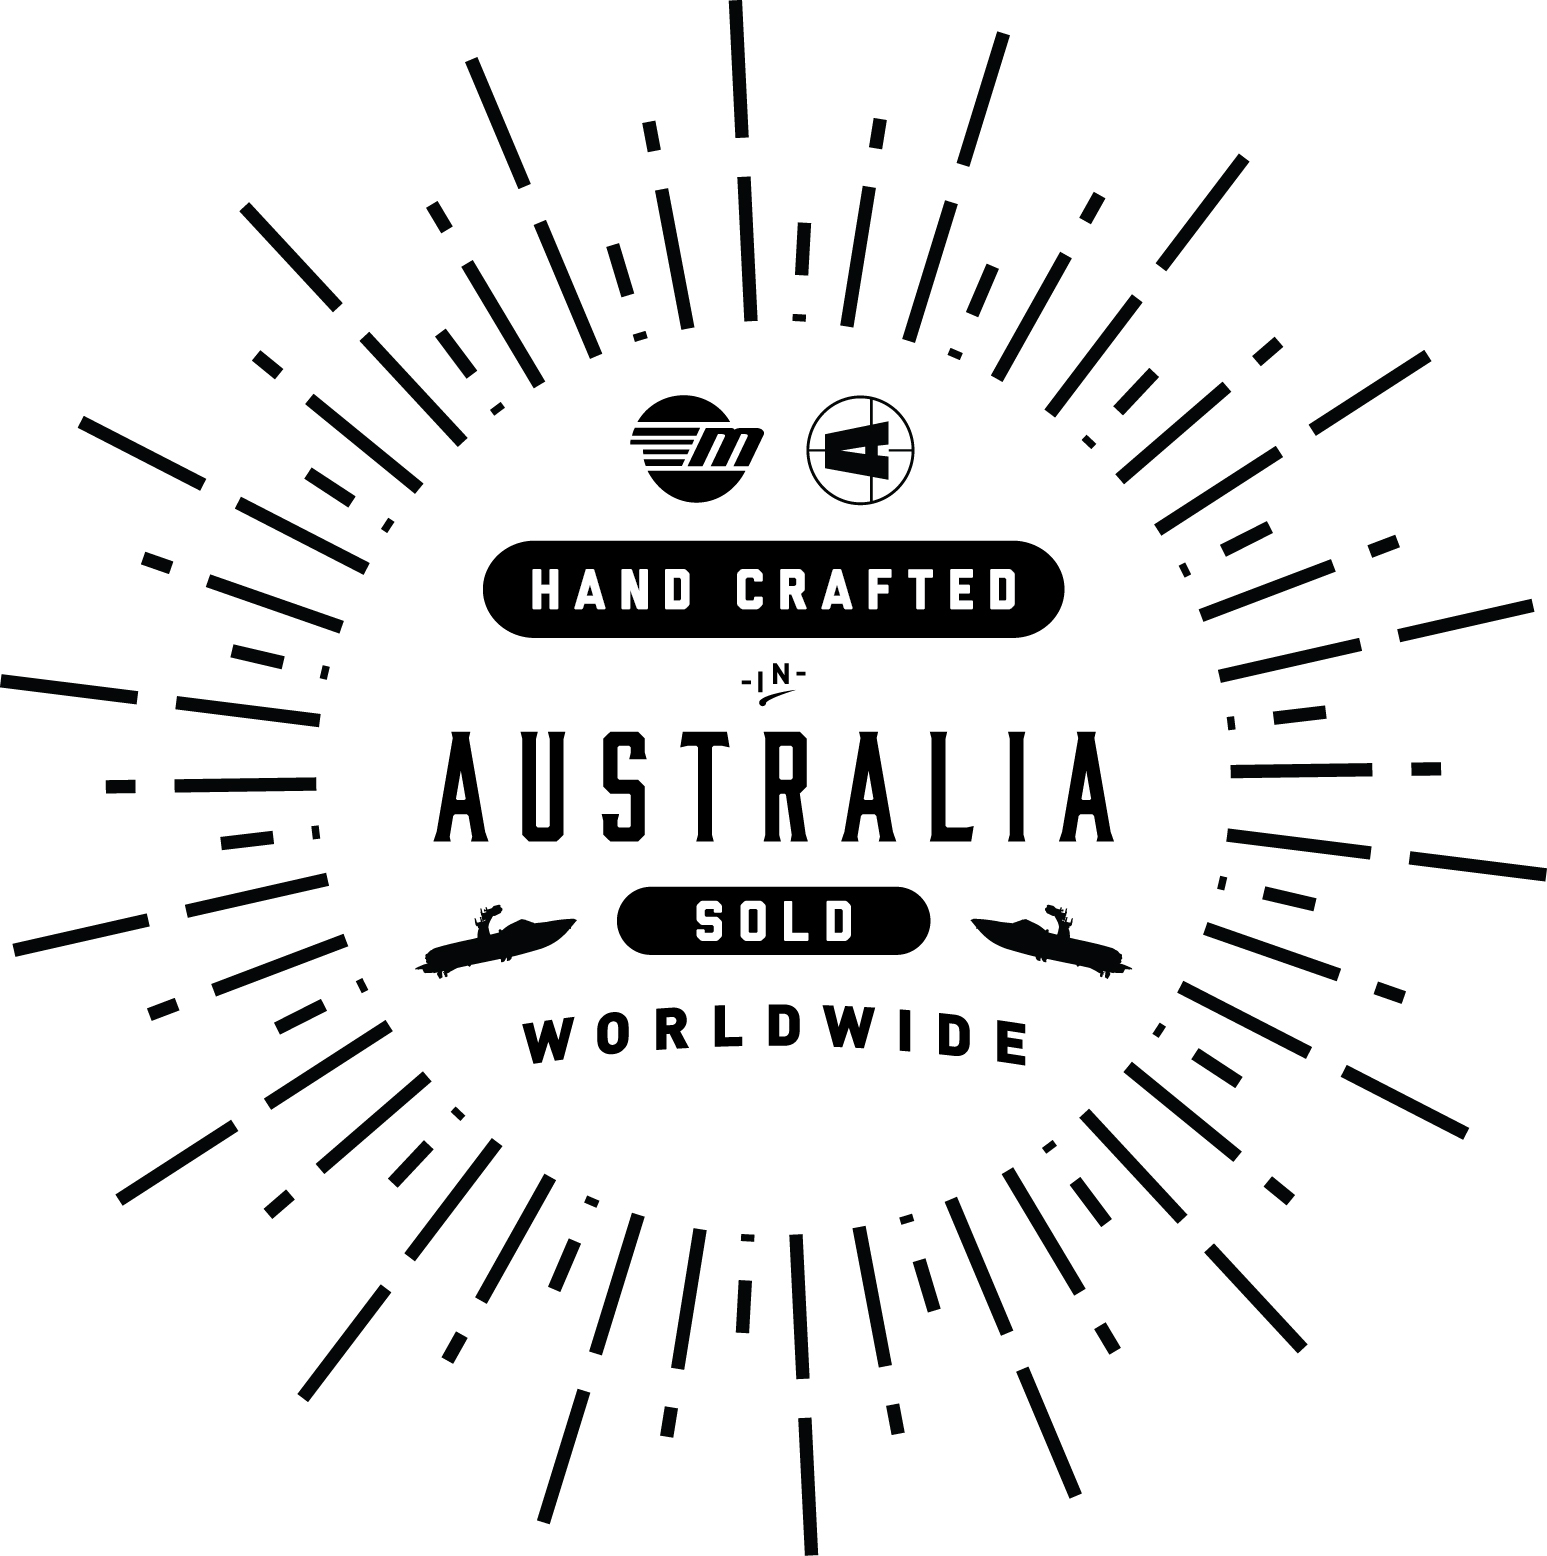 Malibu Boats | Proudly Handcrafted in Australia